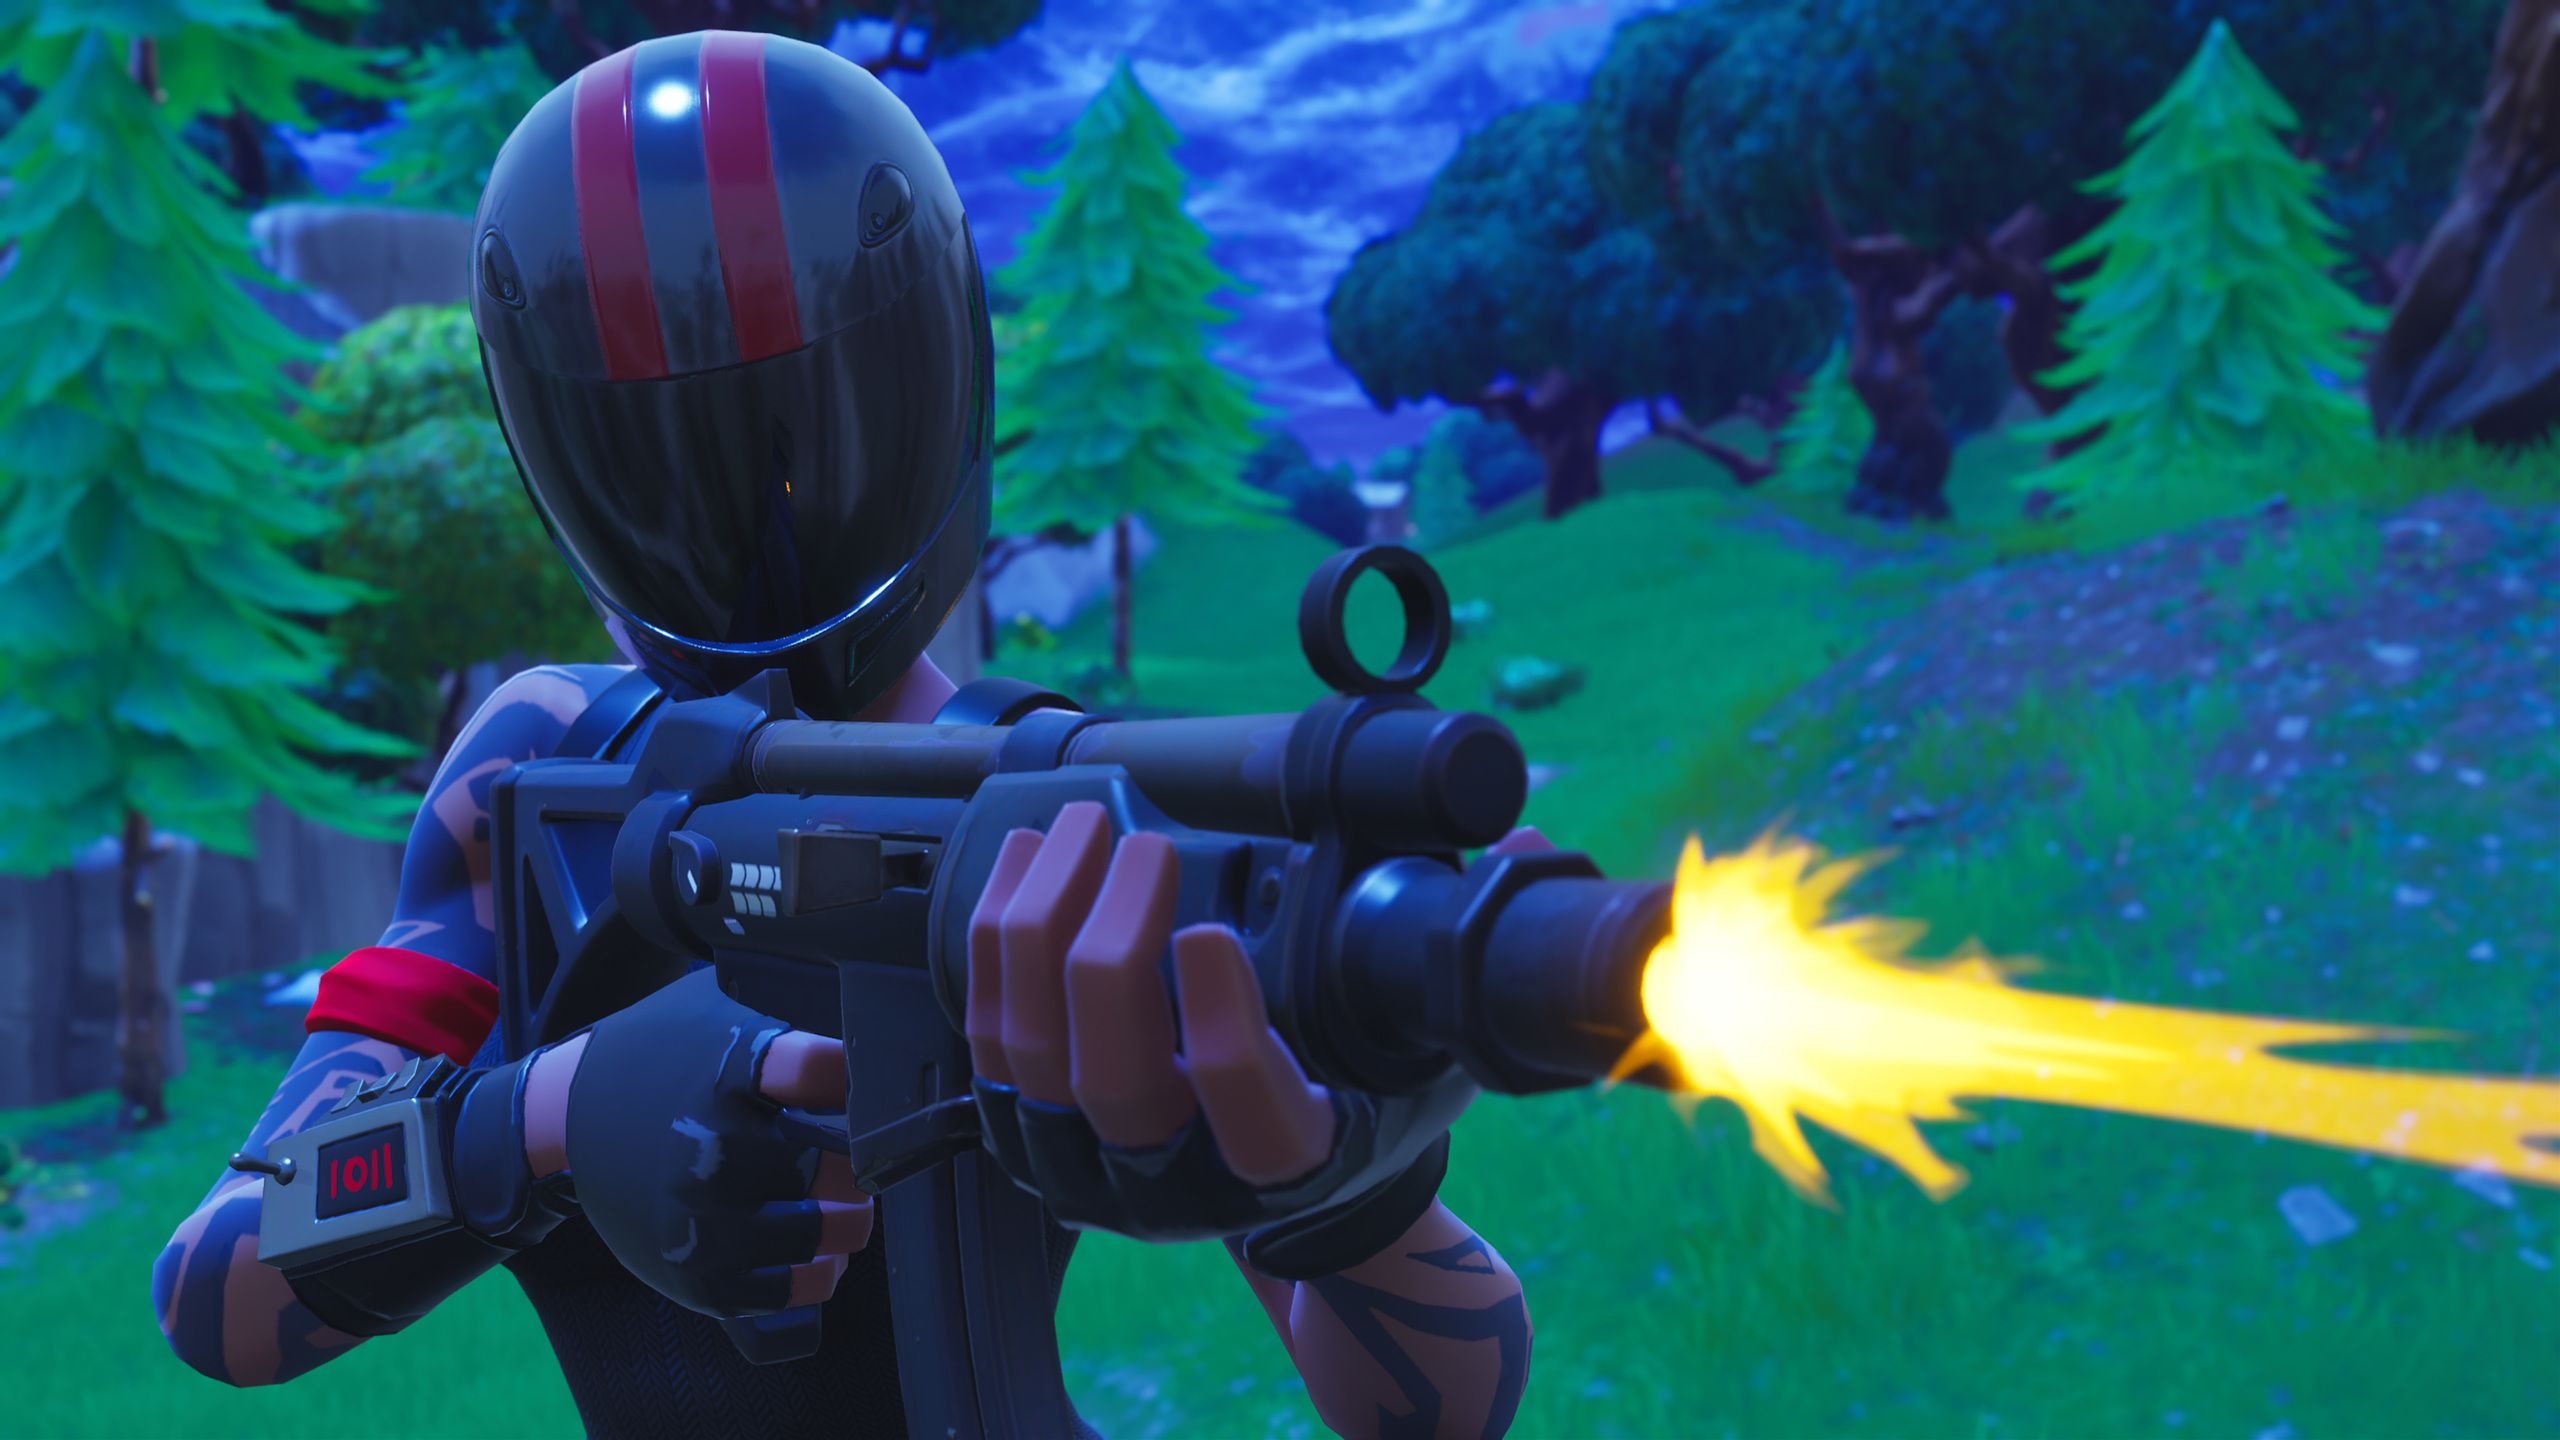 Fortnite 2560x1440 Wallpapers Top Free Fortnite 2560x1440